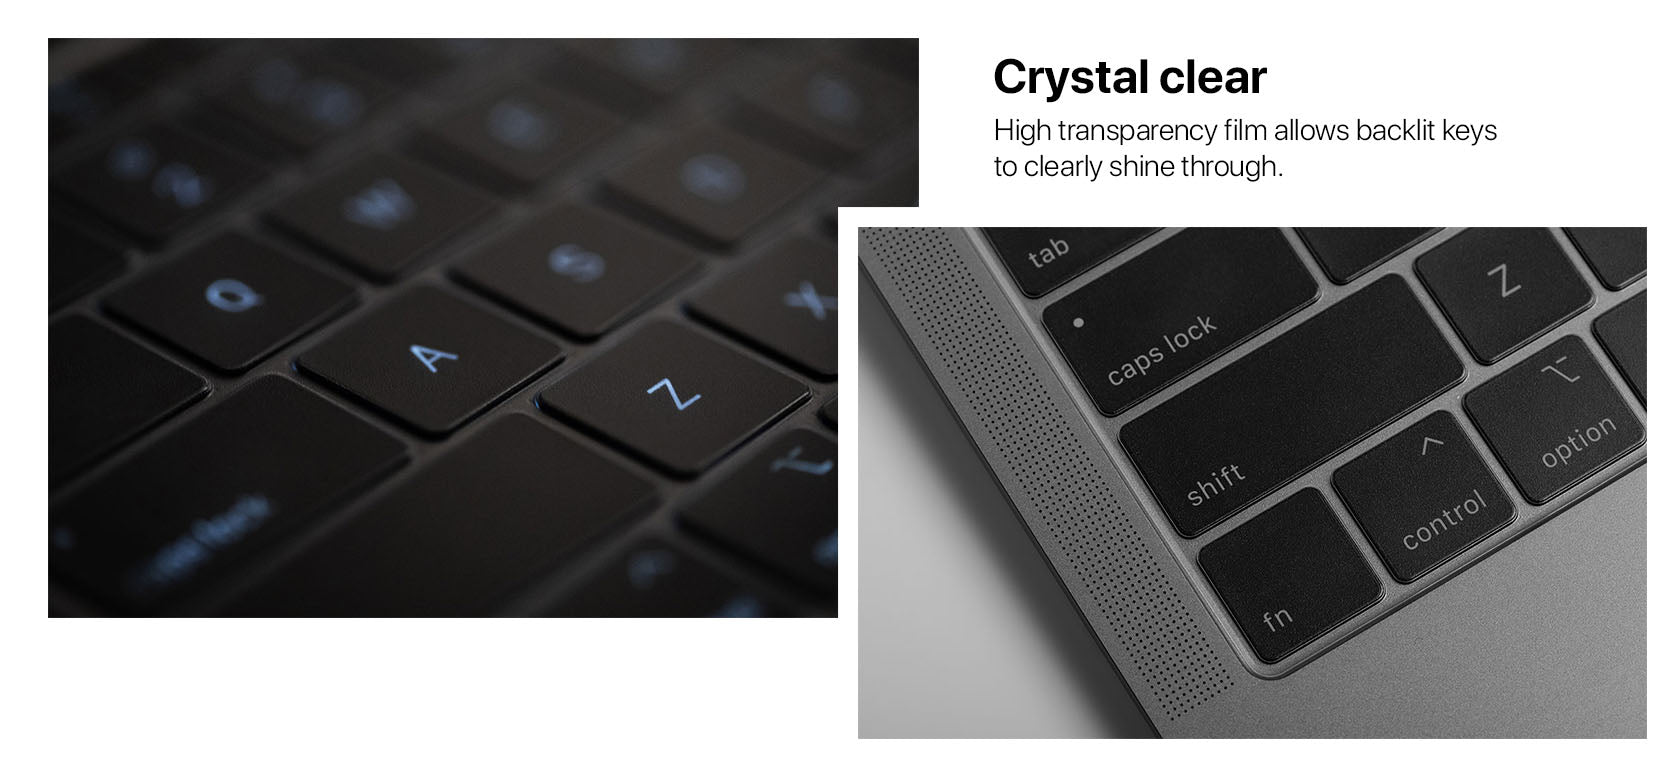 crystal clear High transparency film allows backlit keys to clearly shine through.